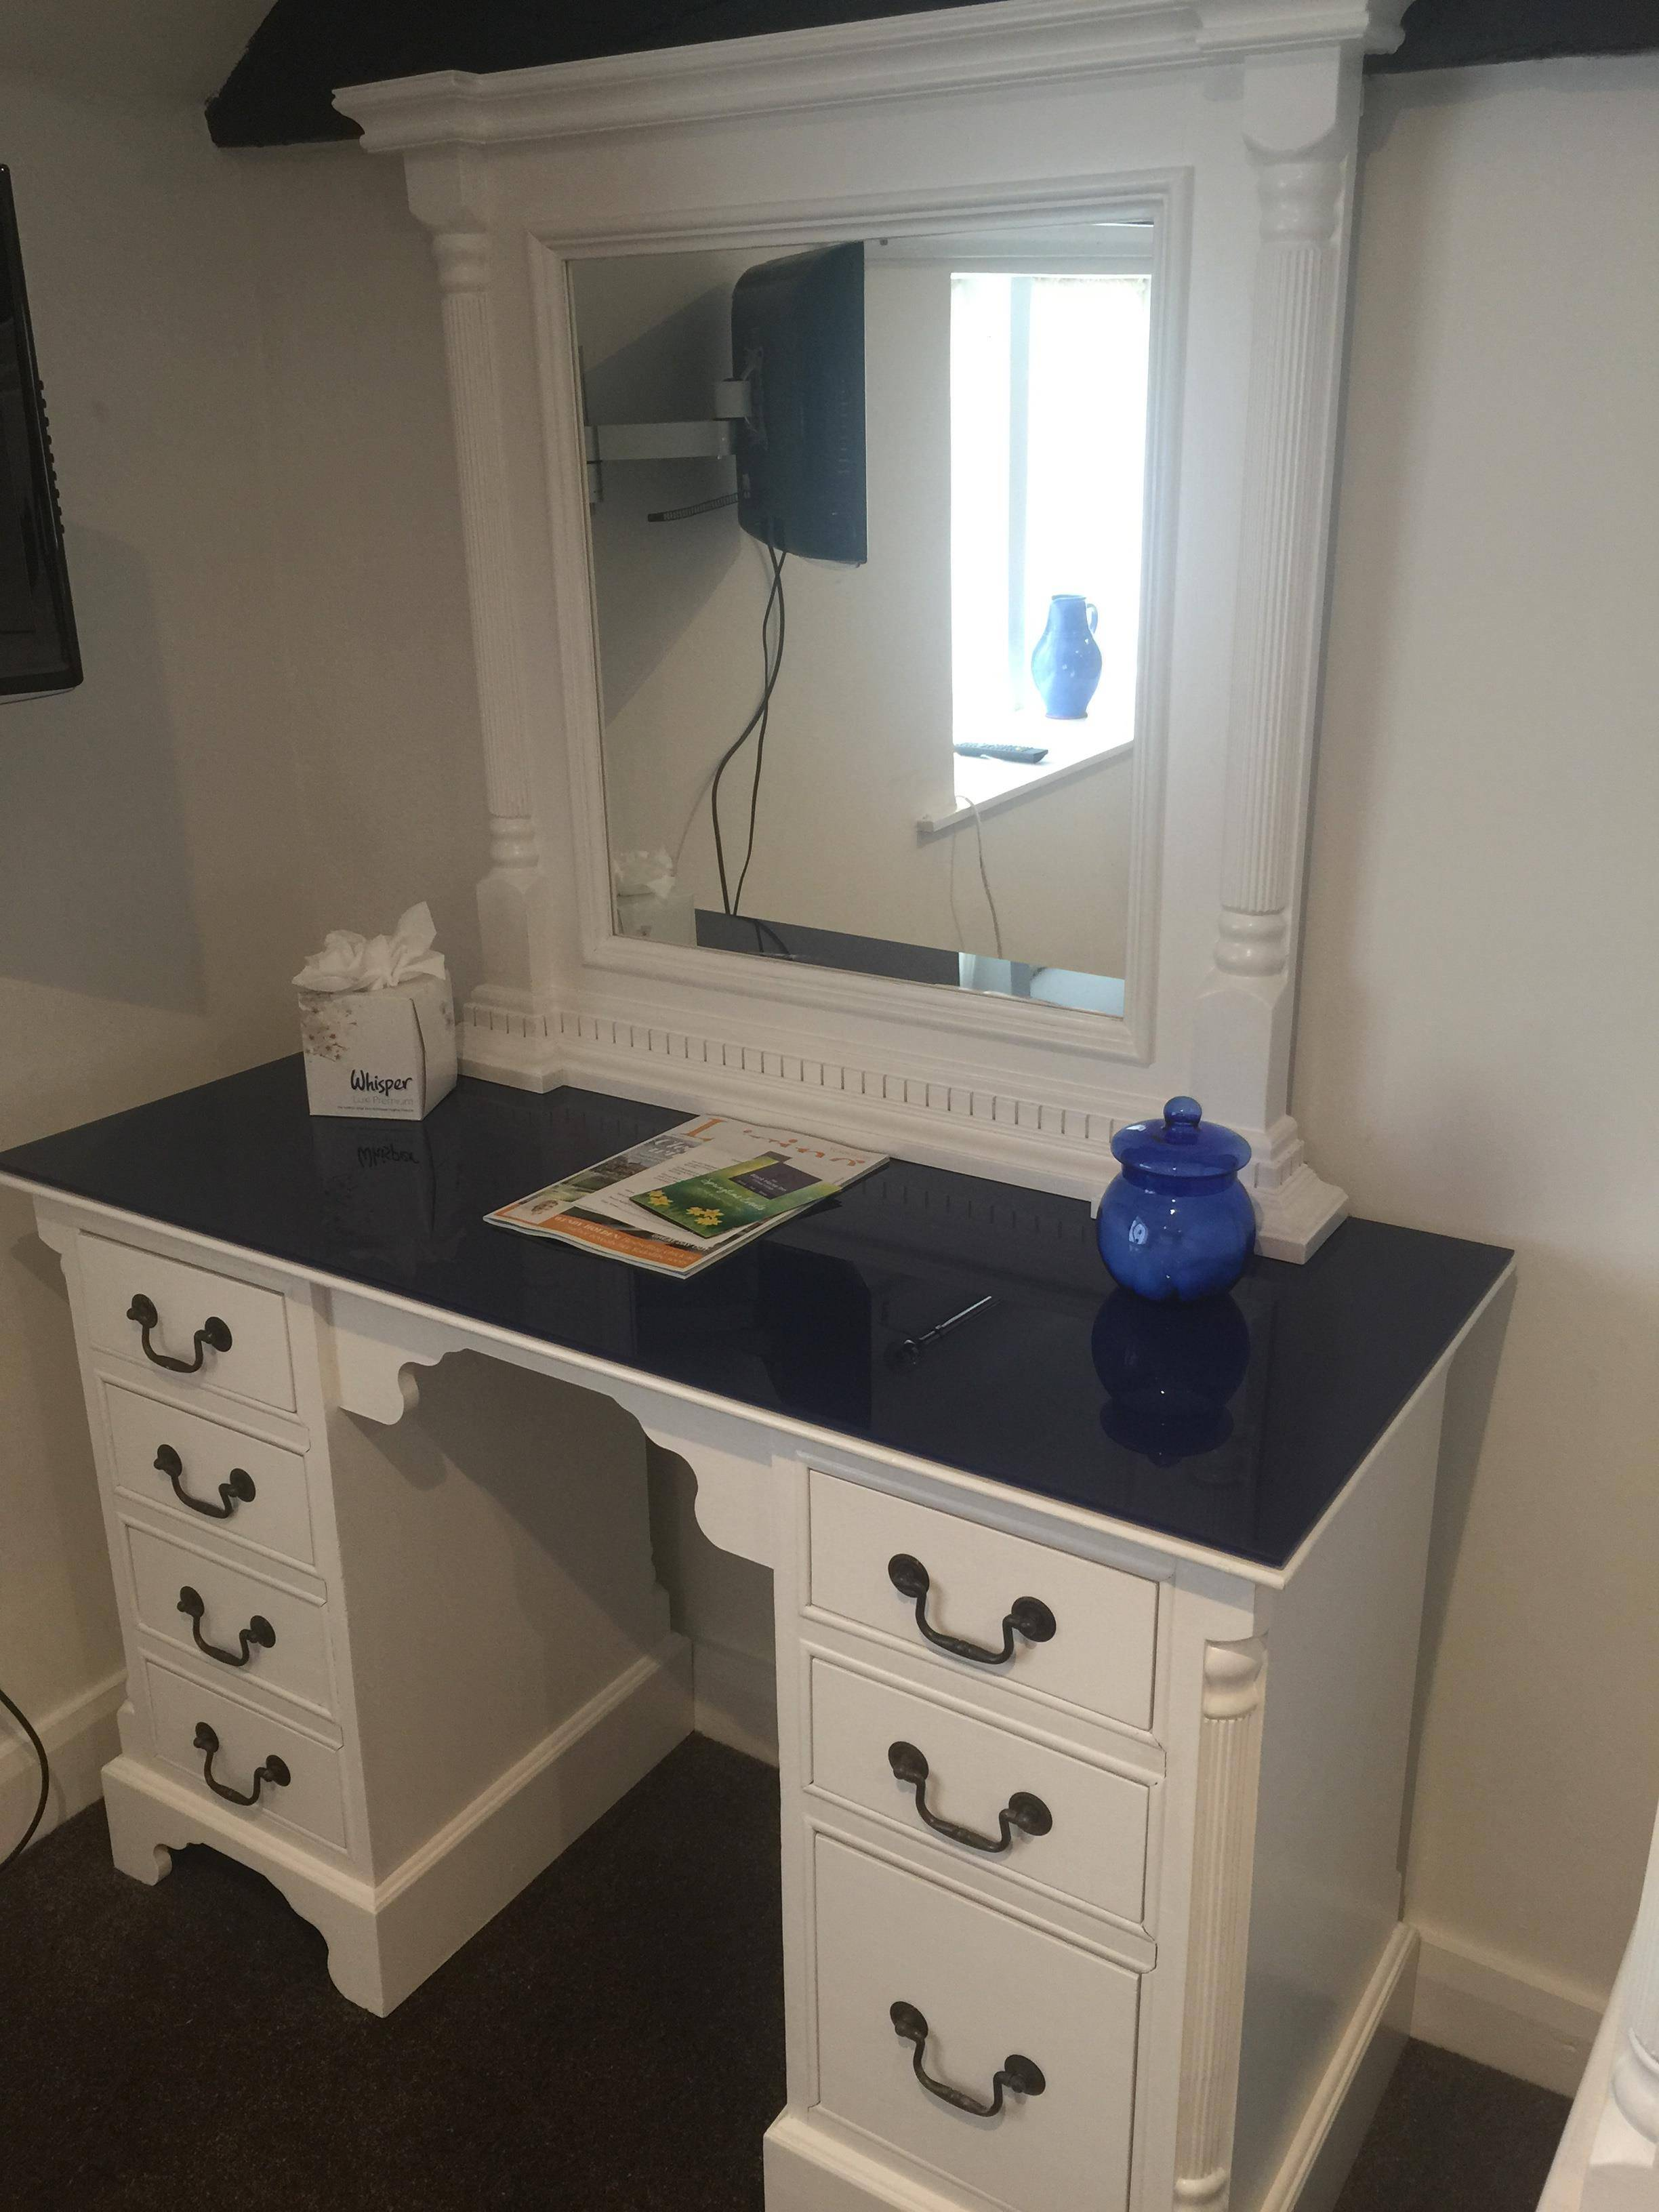 Walls painted in Dulux 'White Cotton'